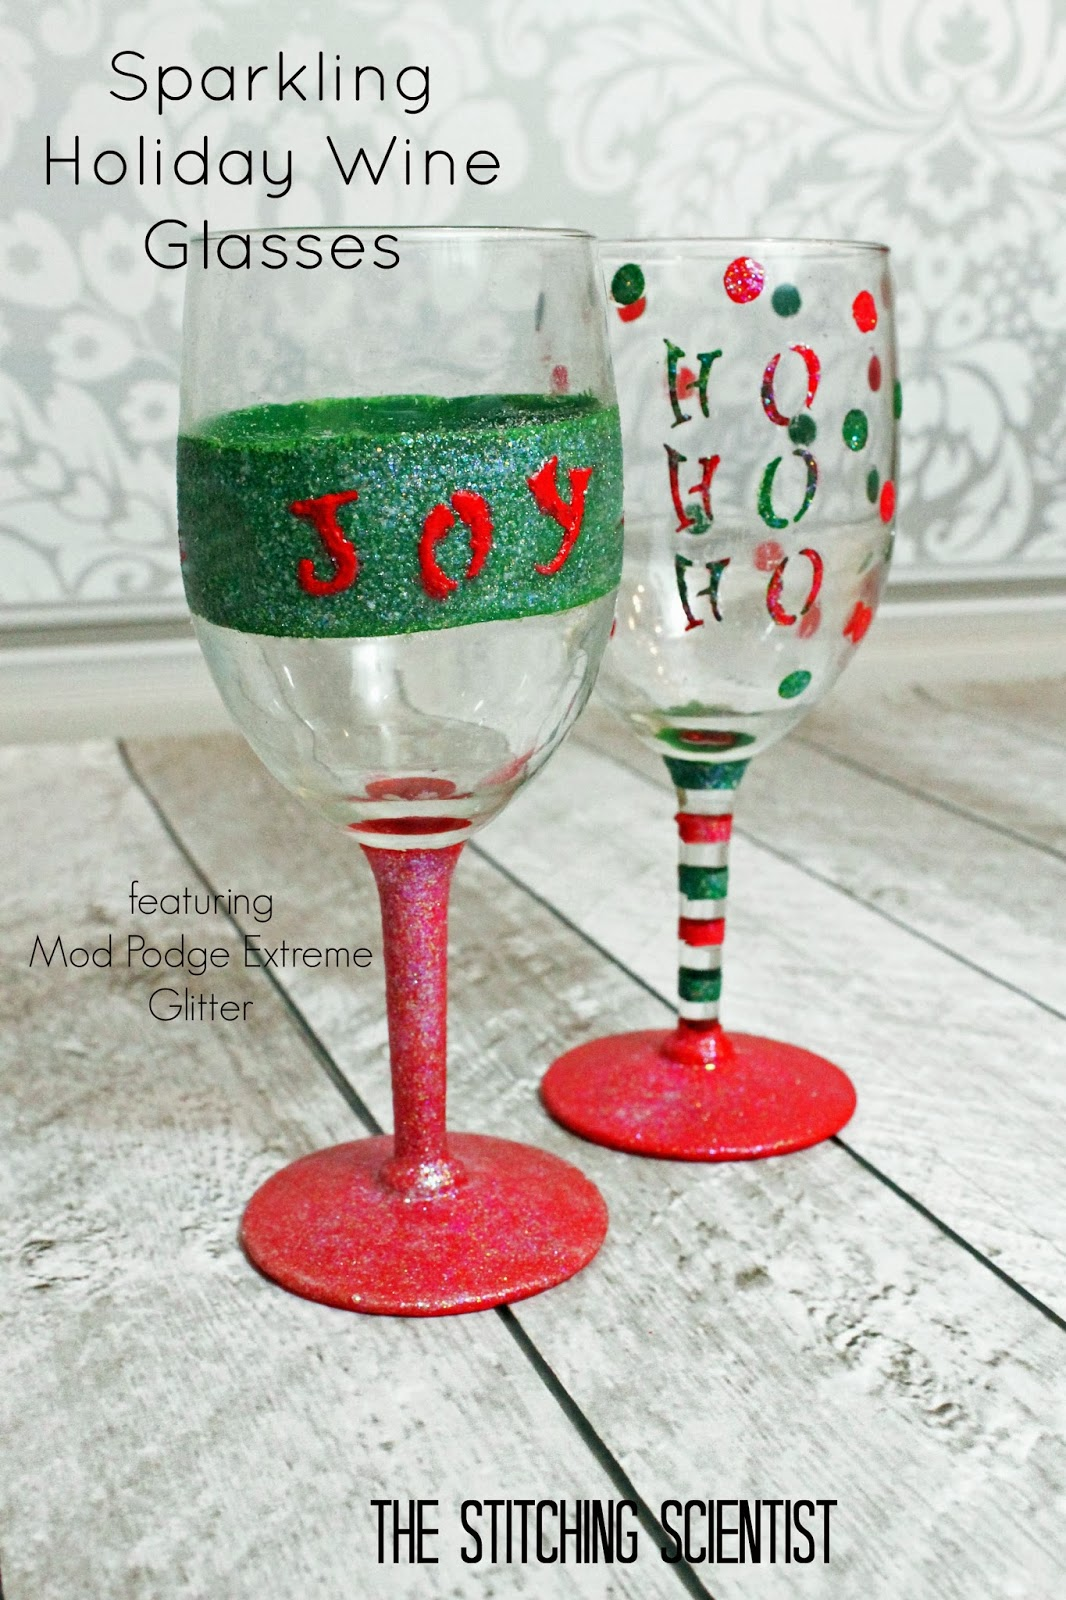 Diy sparkling holiday wine glasses the stitching scientist for Holiday wine glass crafts